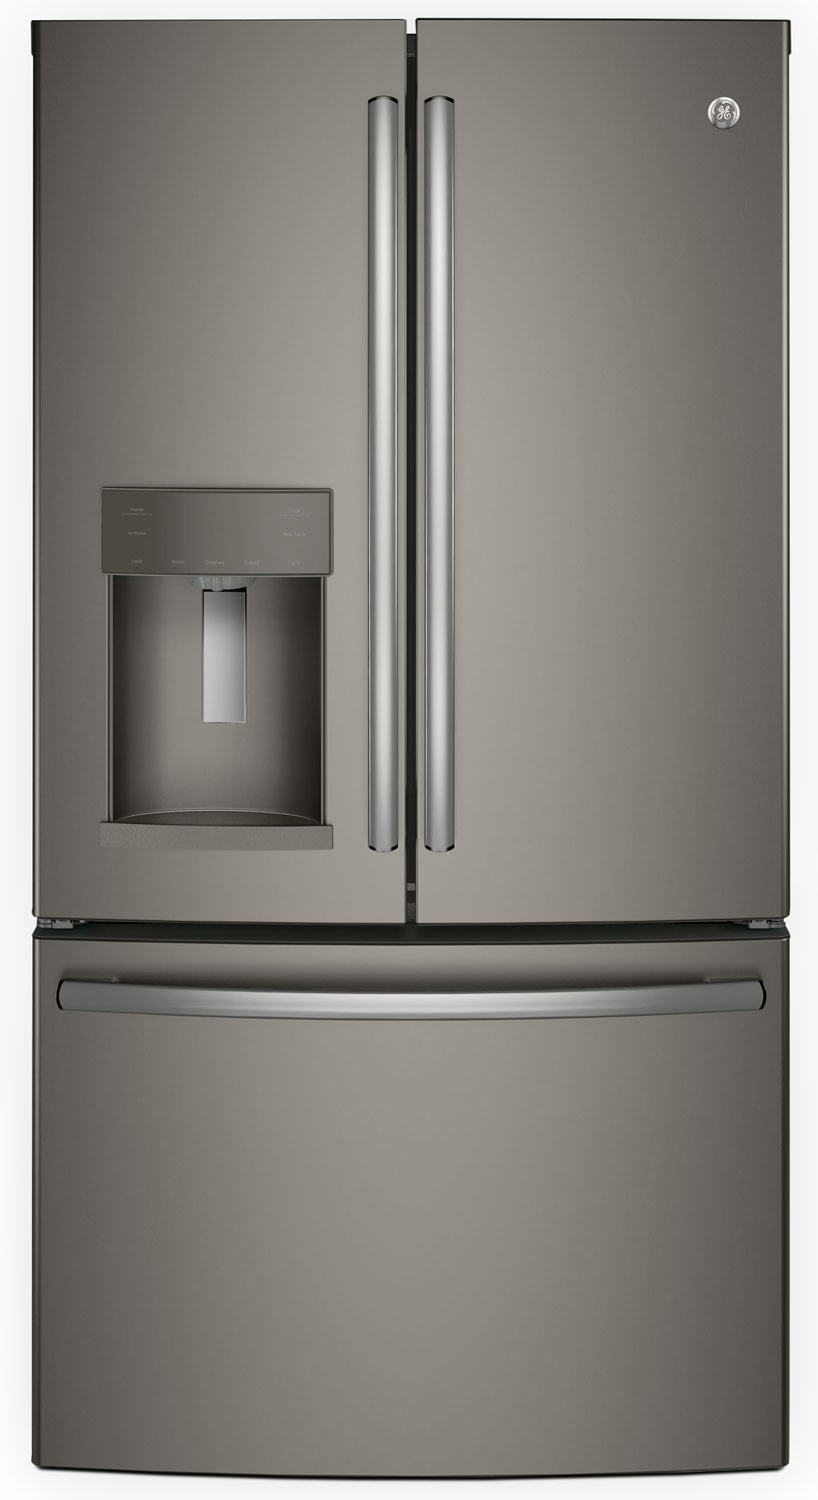 GE 25.7 Cu. Ft. French-Door Refrigerator – GFE26GMKES